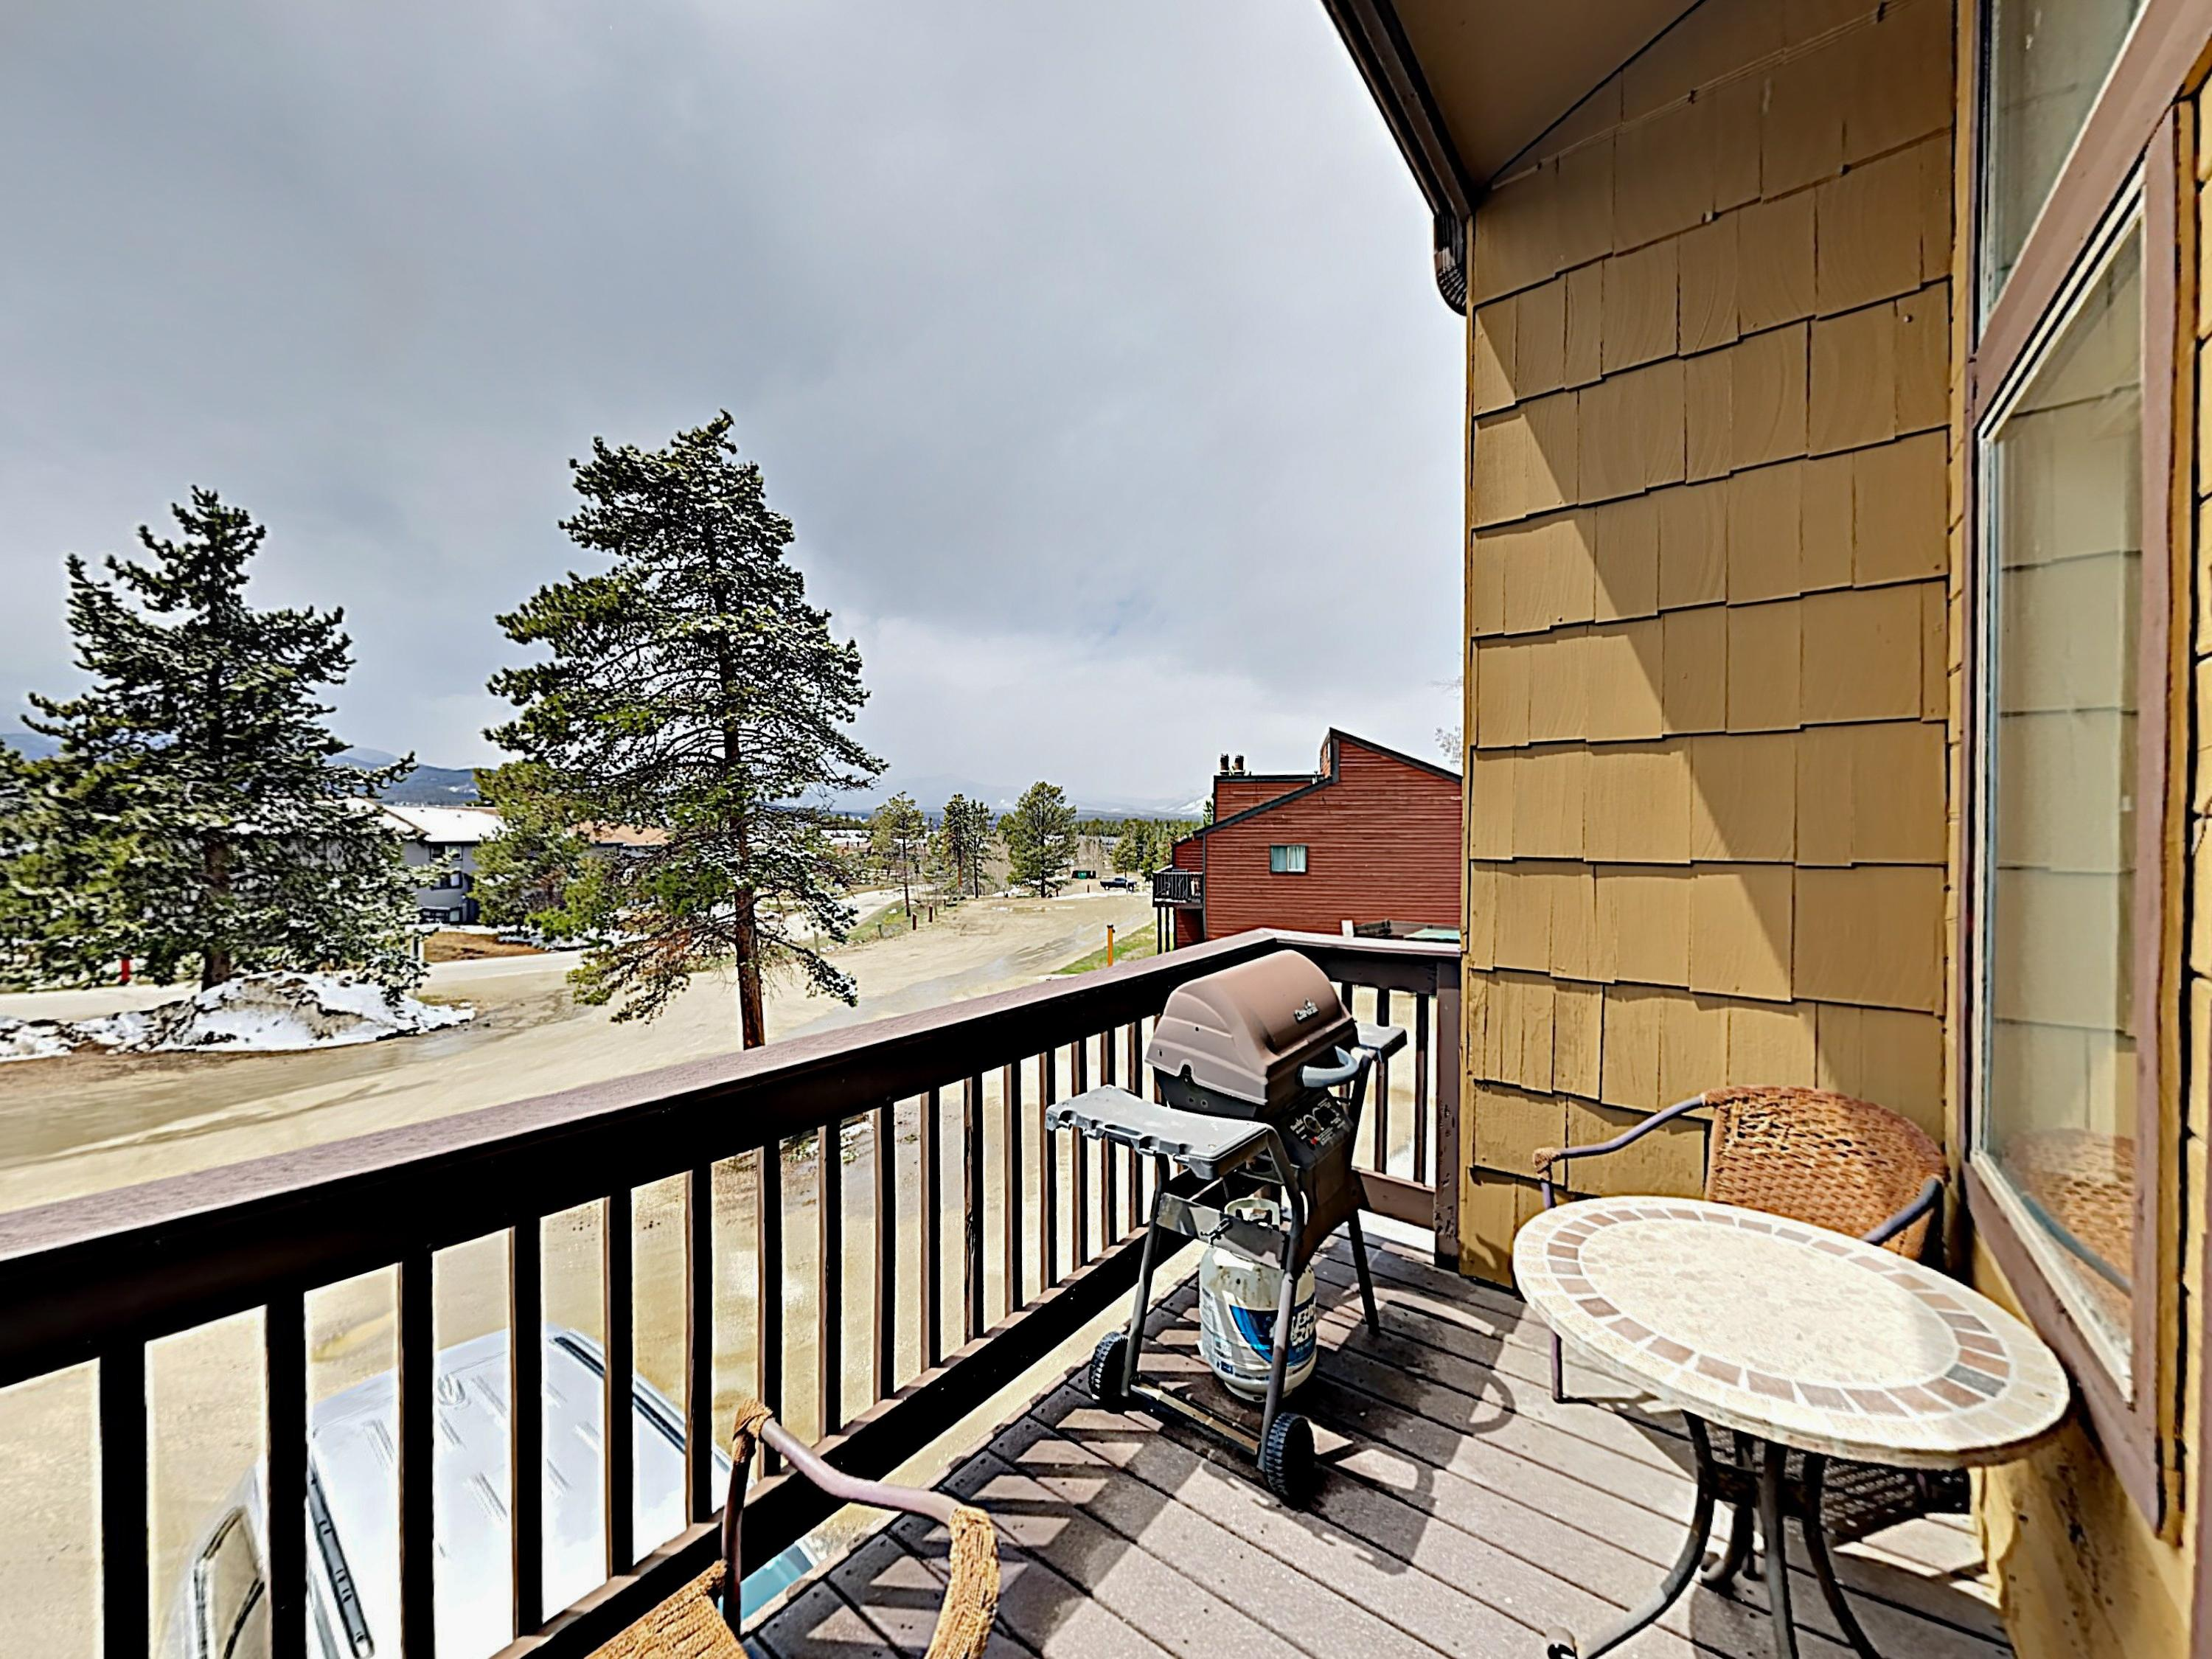 Enjoy the crisp mountain air on the balcony while dinner sizzles on the grill.